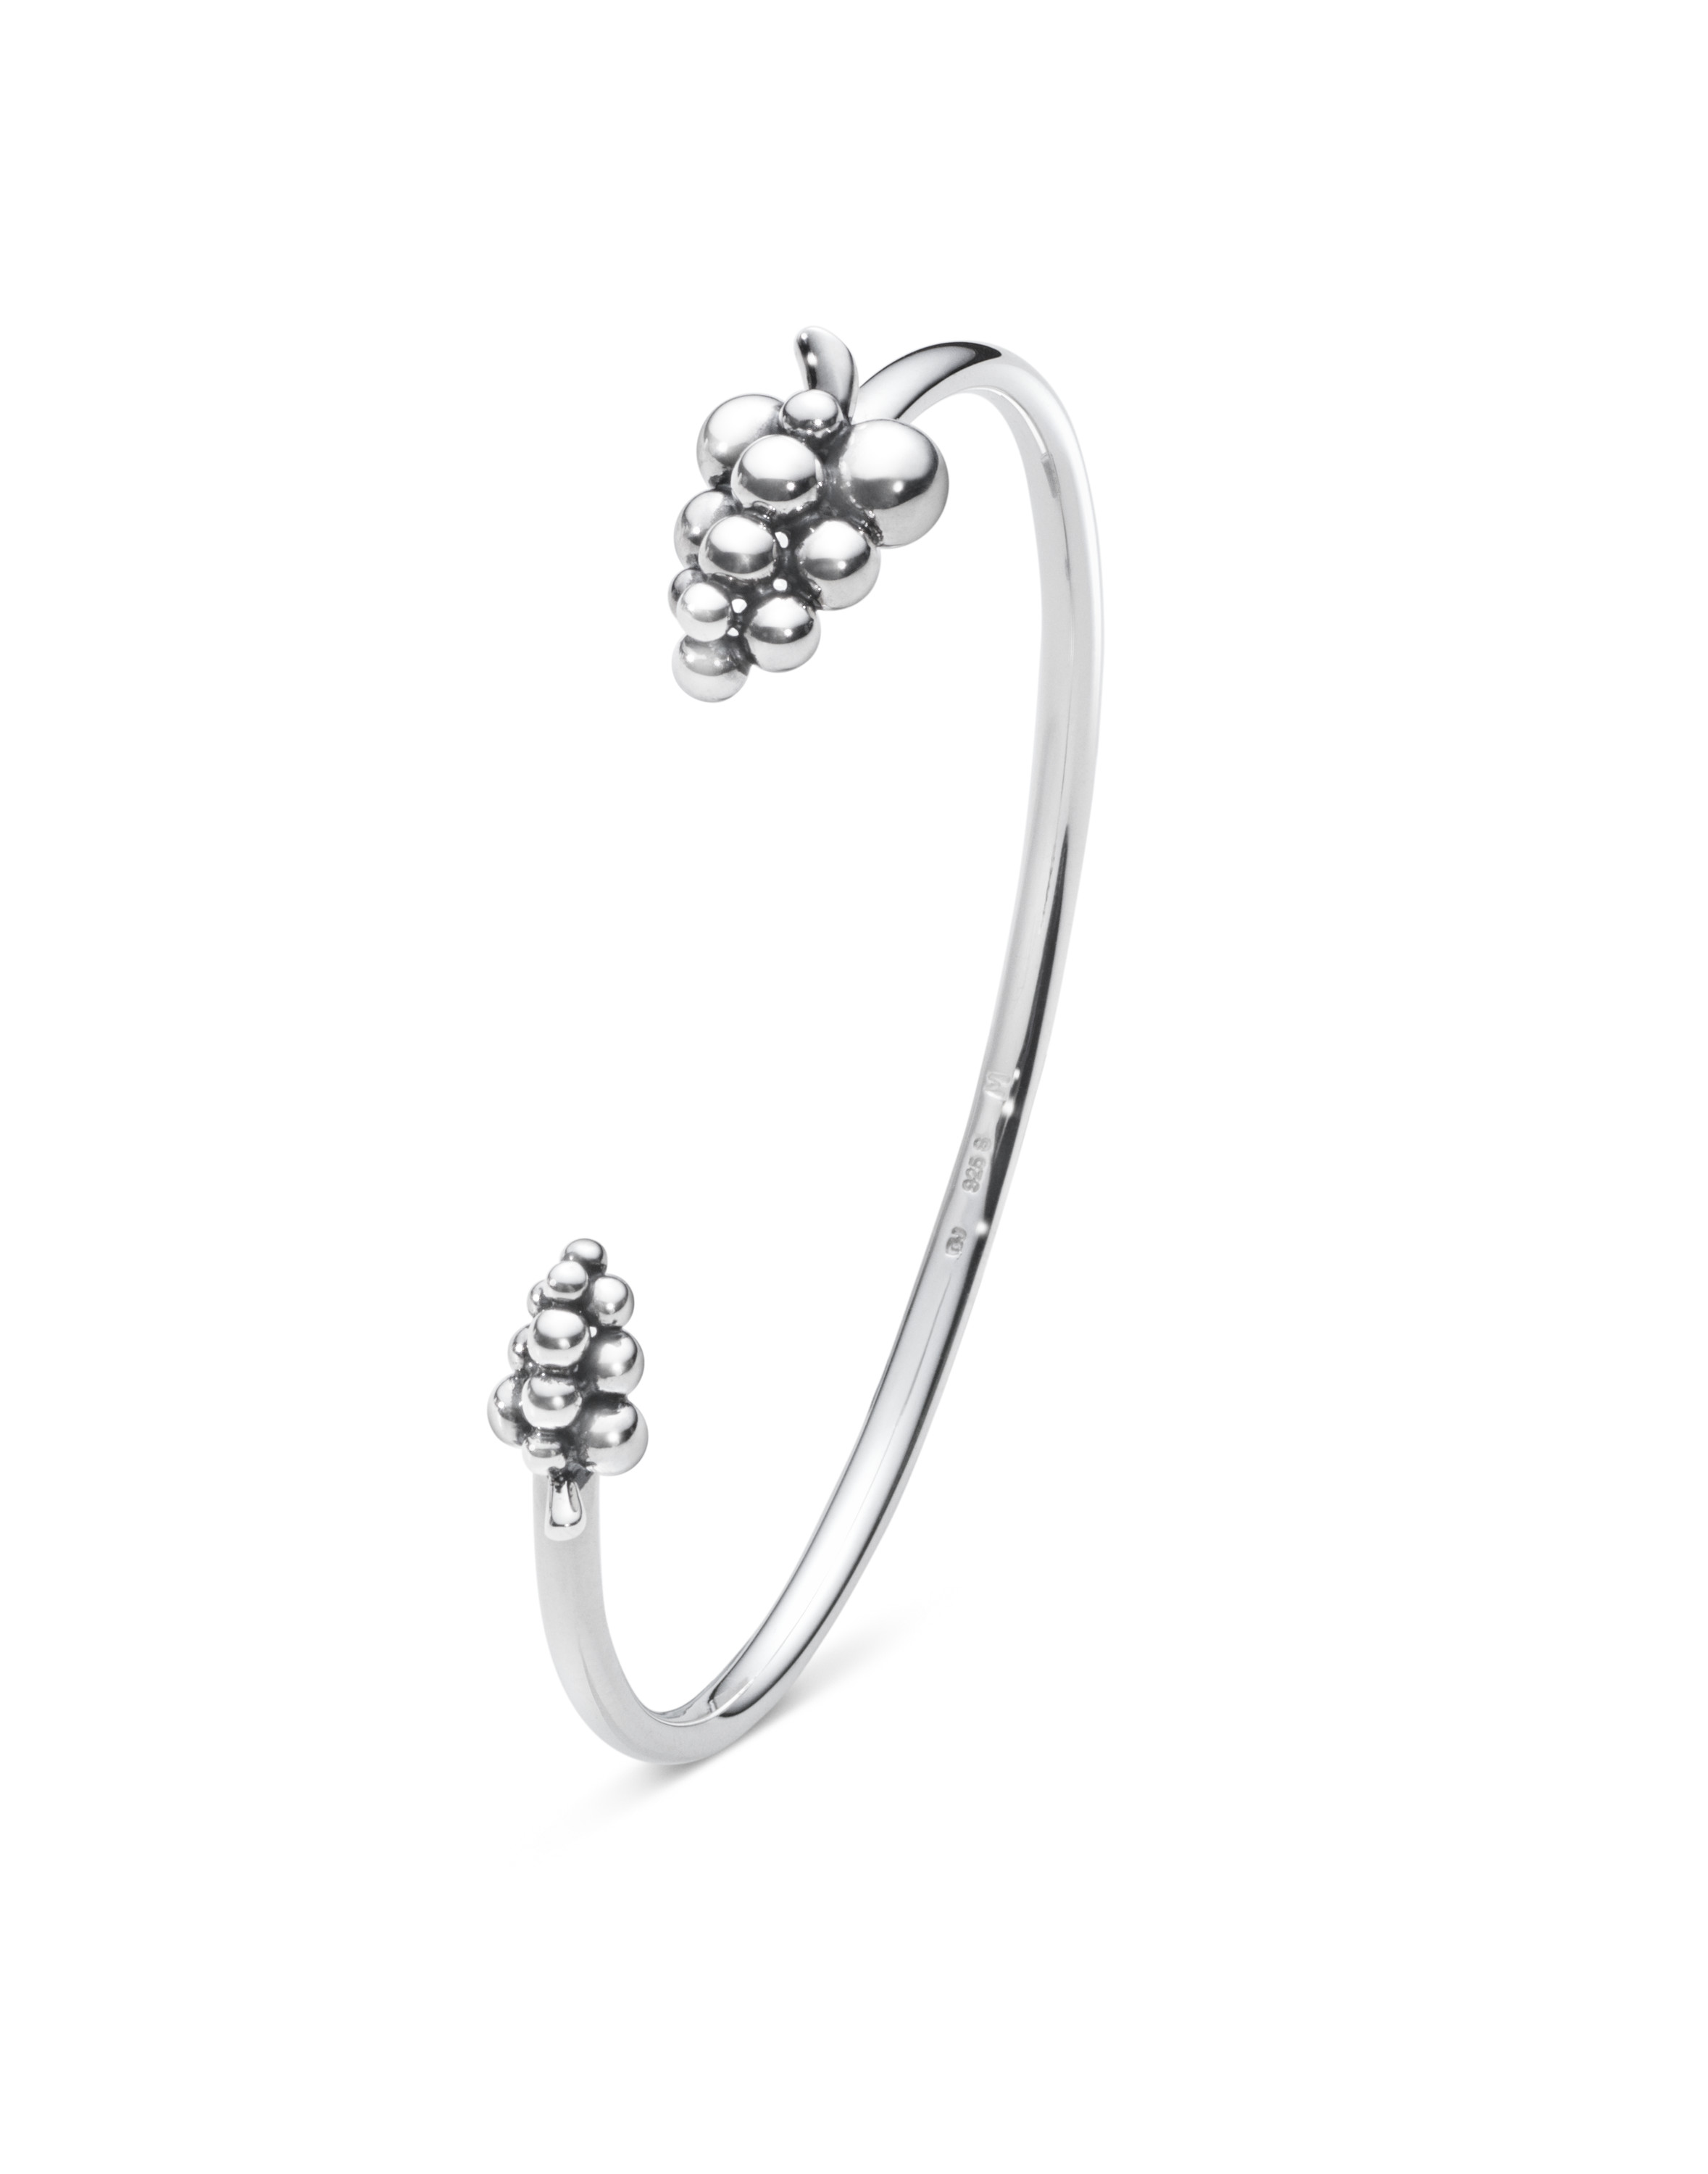 Georg Jensen Moonlight Grapes armring - 3531196 Armring størrelse M